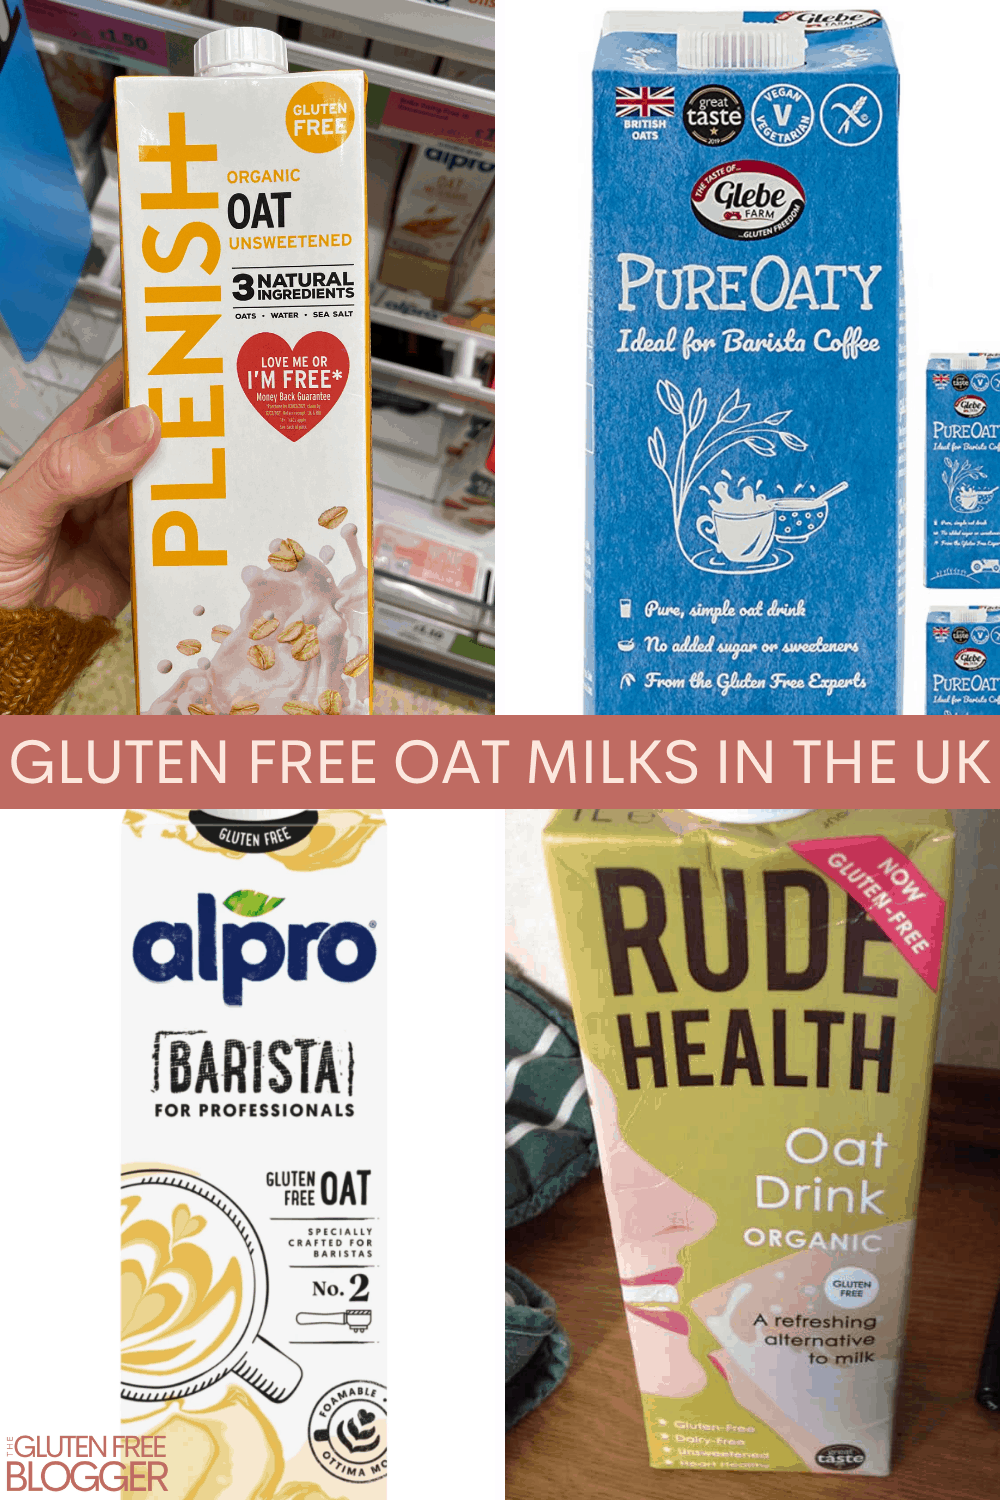 gluten free oat milk in the uk